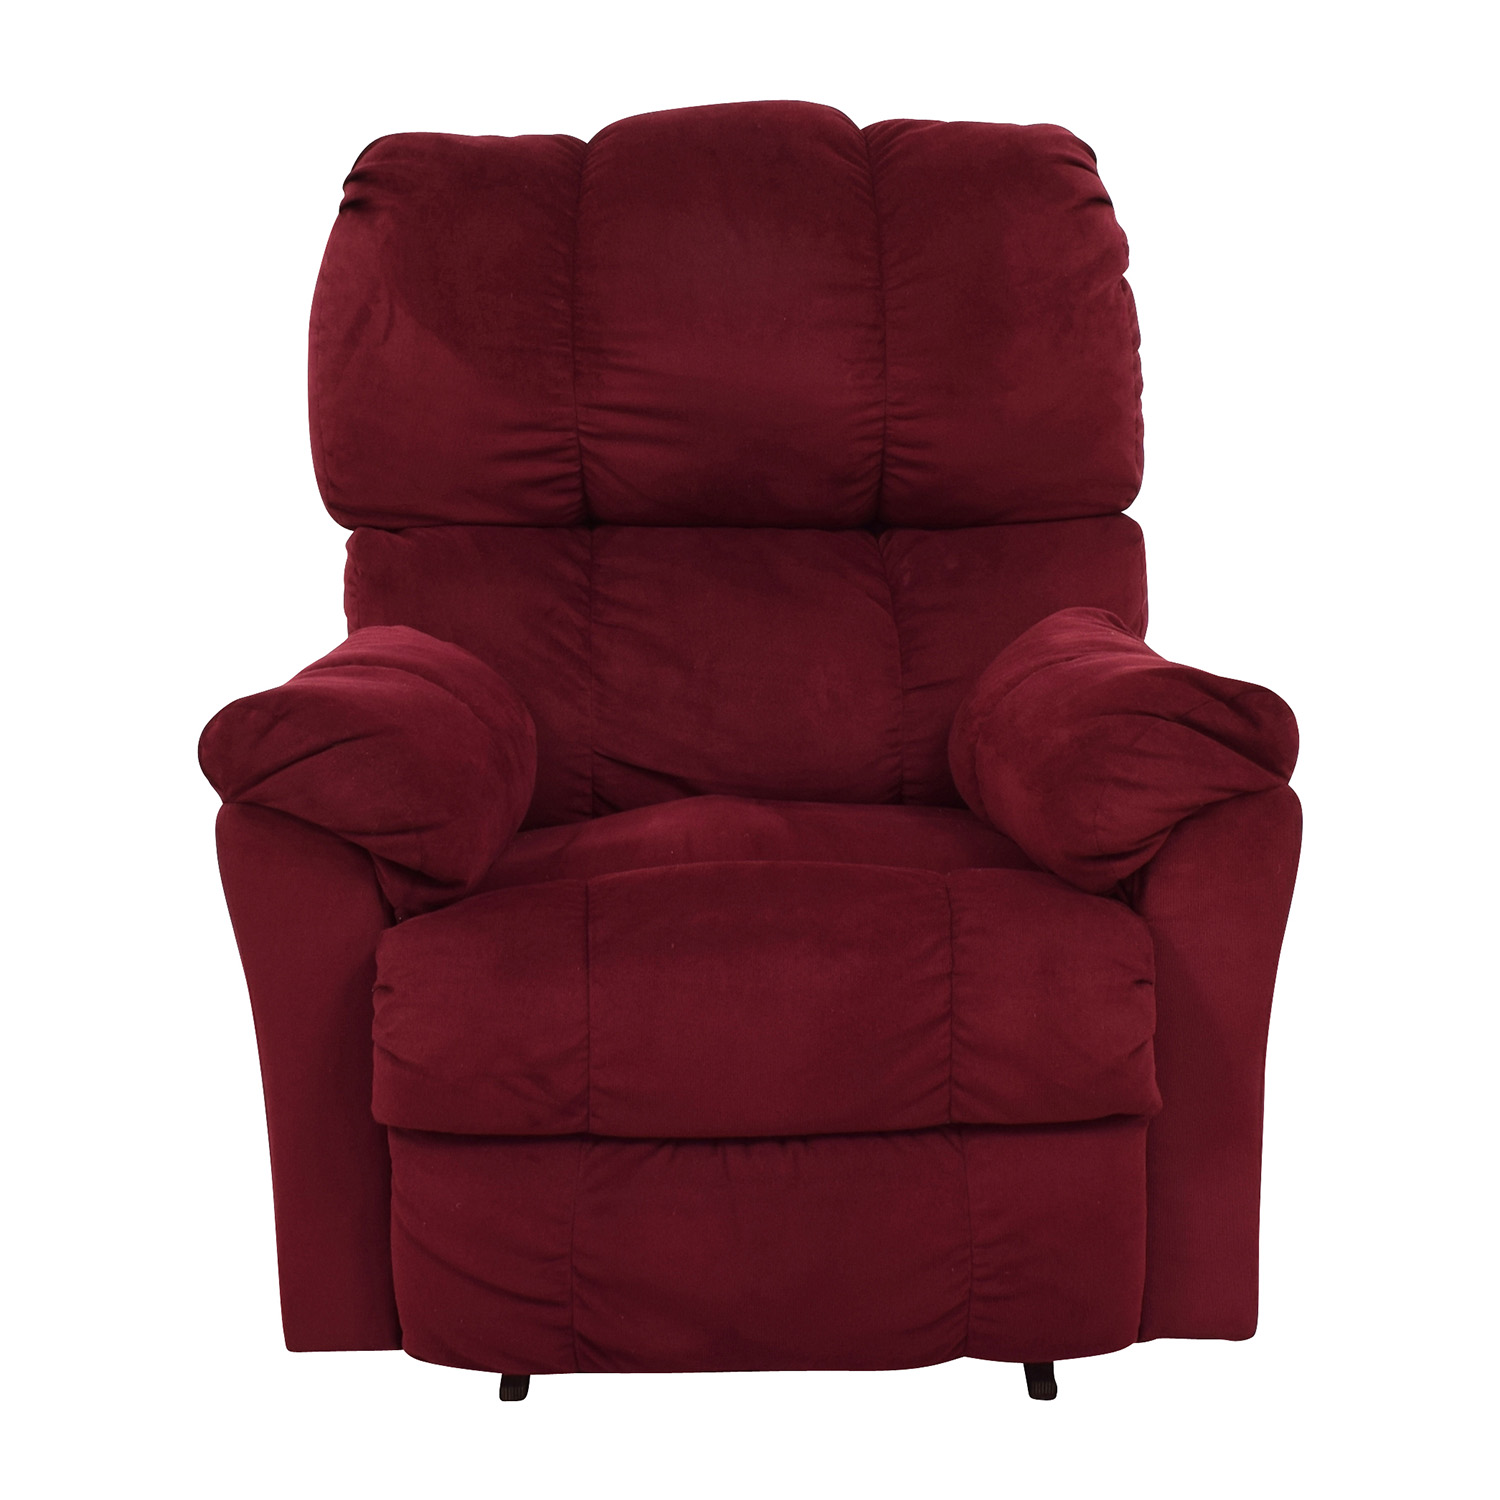 Macys Macys Red Recliner Arm Chair price